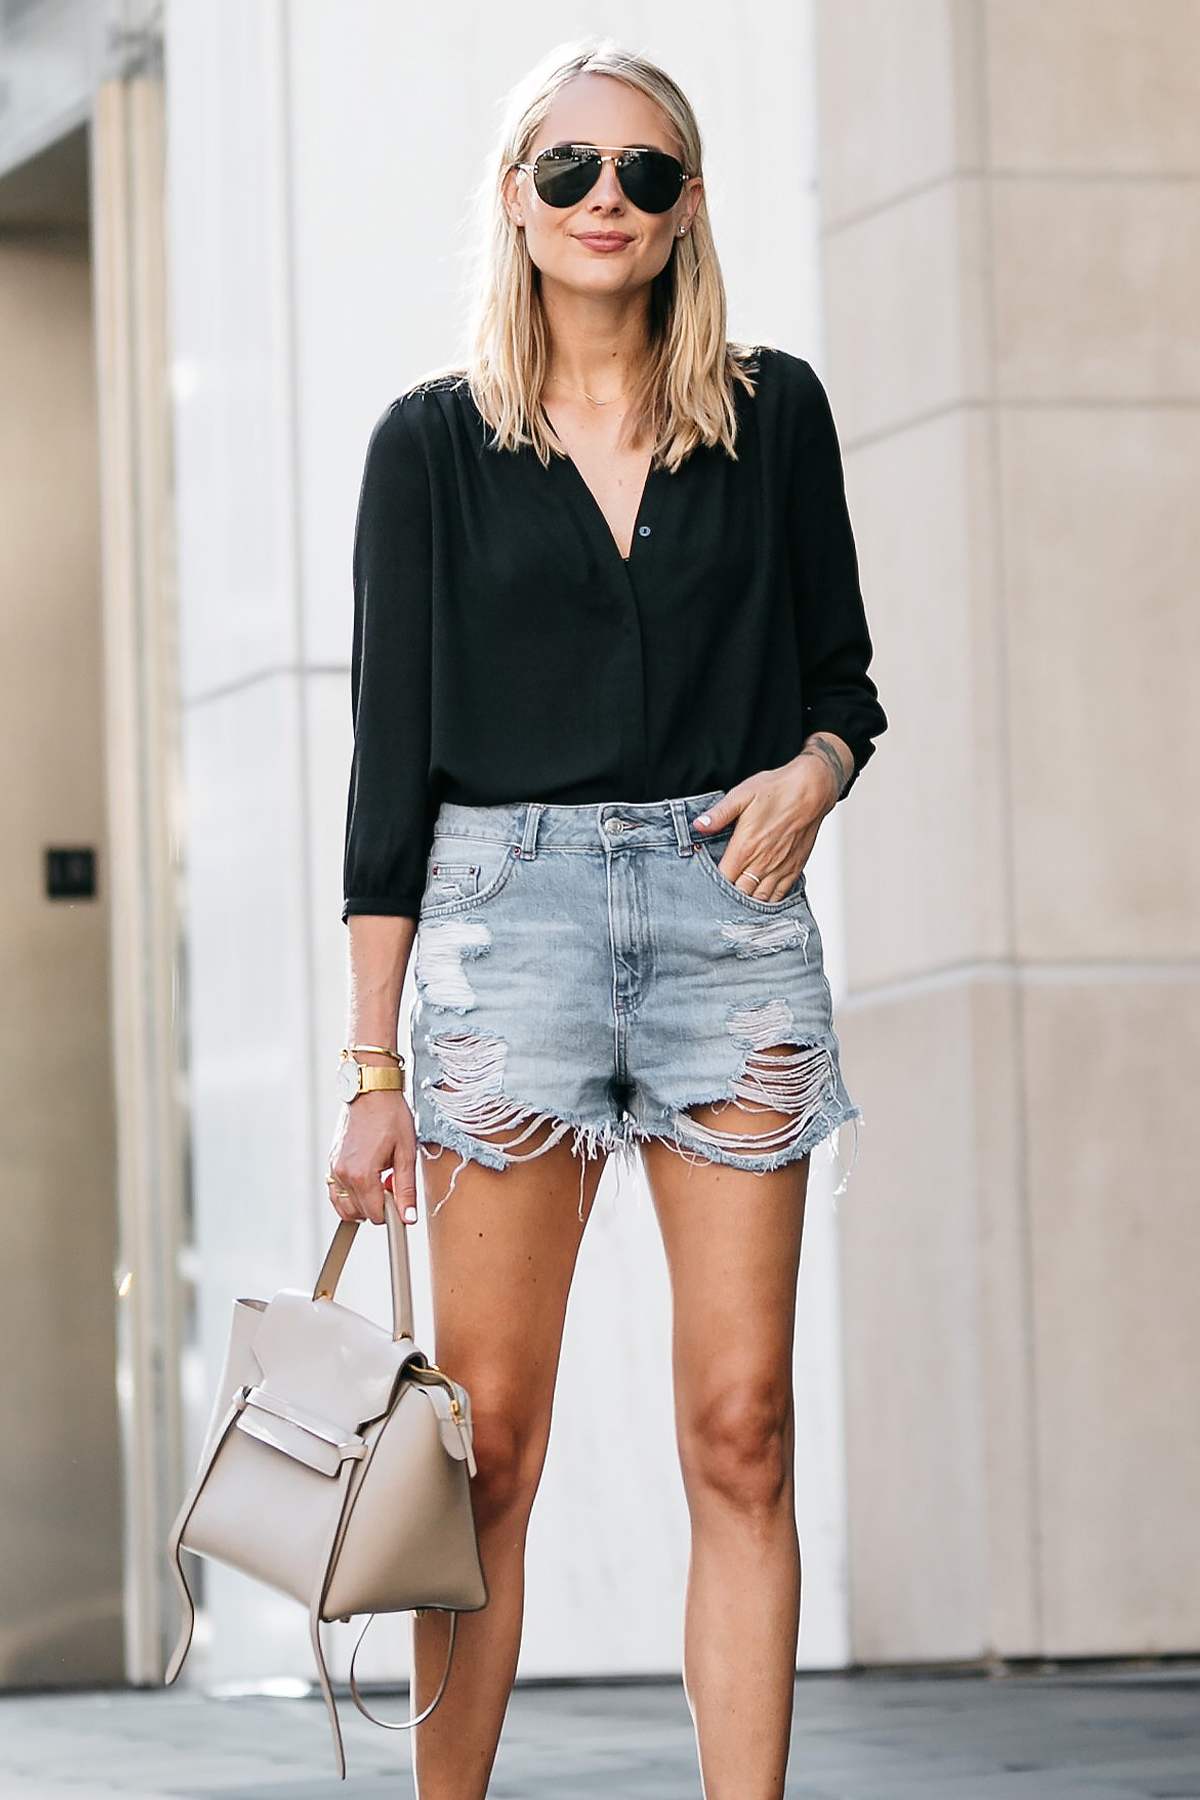 Mom Jean Shorts Outfit